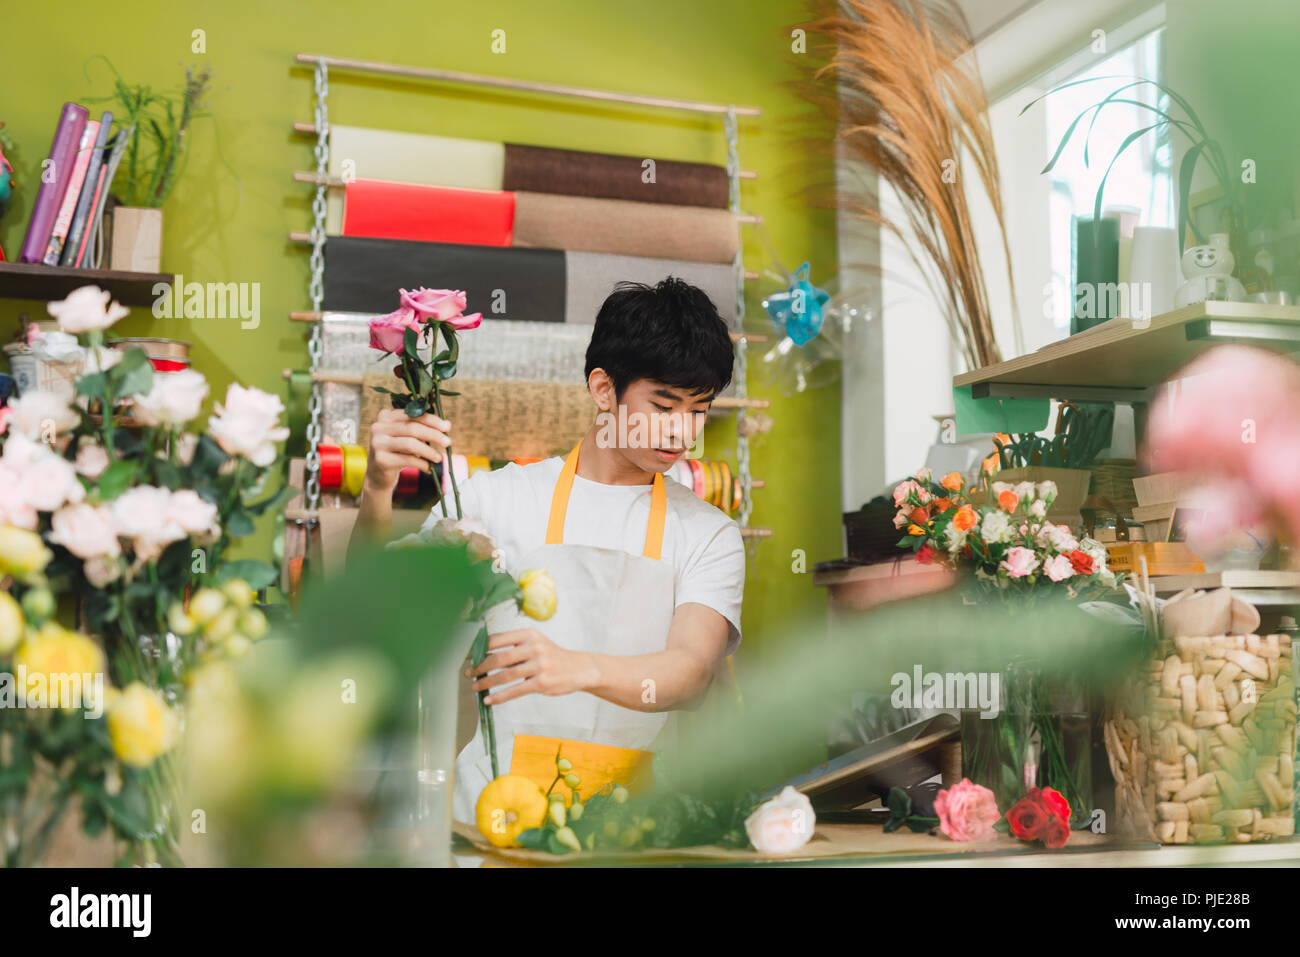 Small business. Male florist making rose bouquet at counter desk in flower shop. Man assistant or owner in floral design studio, making decorations an - Stock Image